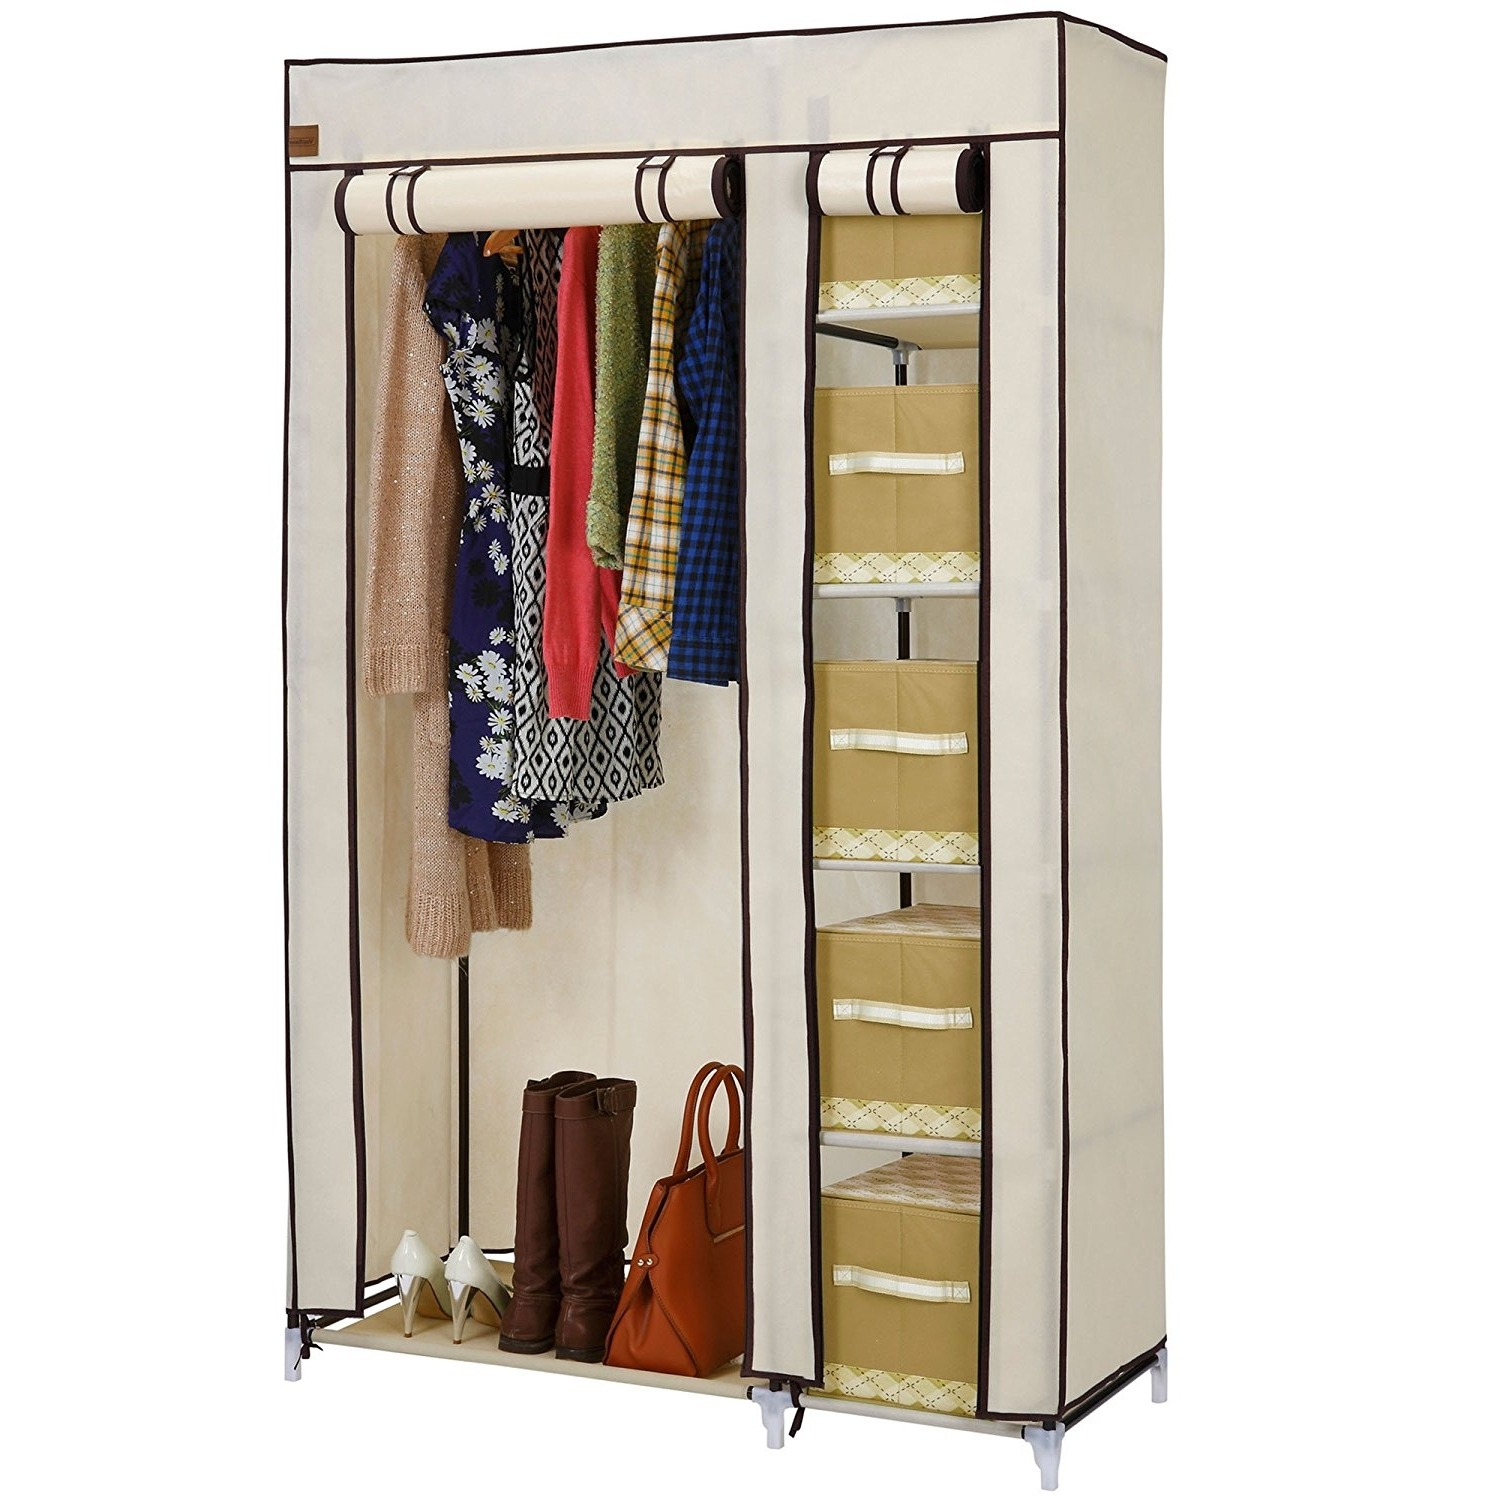 Double Rail Single Wardrobes Intended For Well Known Vonhaus Double Canvas Effect Wardrobe – Clothes Storage Cupboard (View 3 of 15)